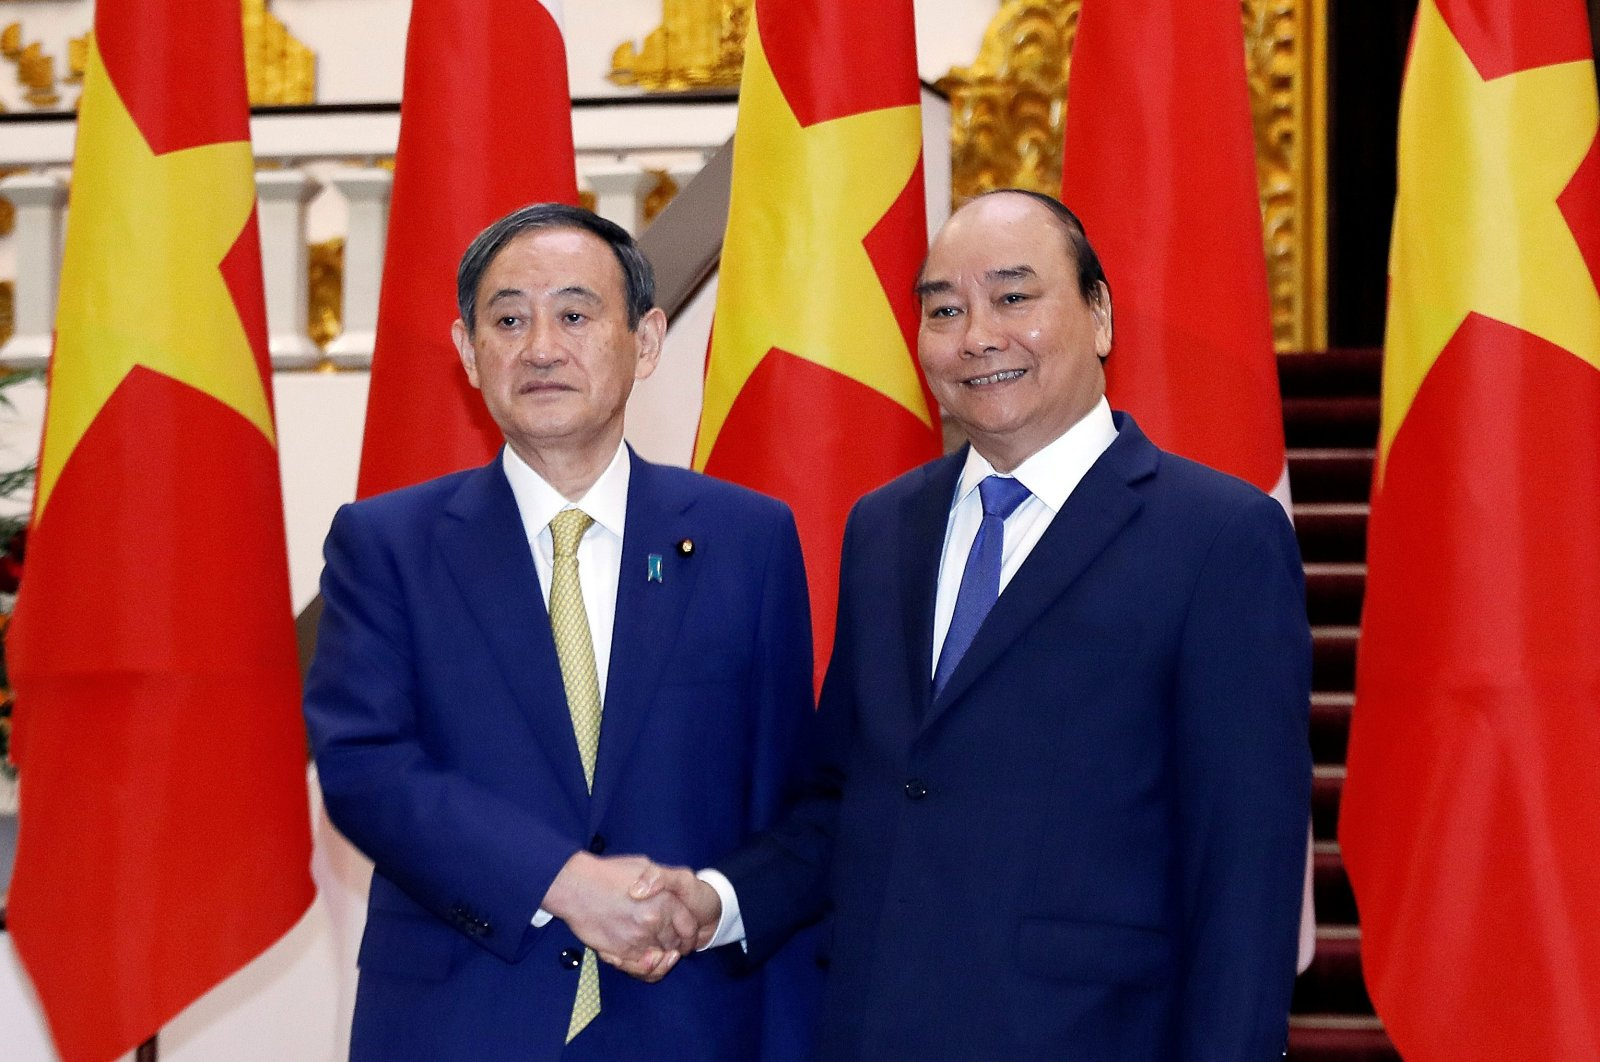 Japan's Prime Minister Yoshihide Suga (L) shakes hands with his Vietnamese counterpart Nguyen Xuan Phuc (R) during an official visit to the Government Office in Hanoi on Oct. 19, 2020. (AFP Photo)